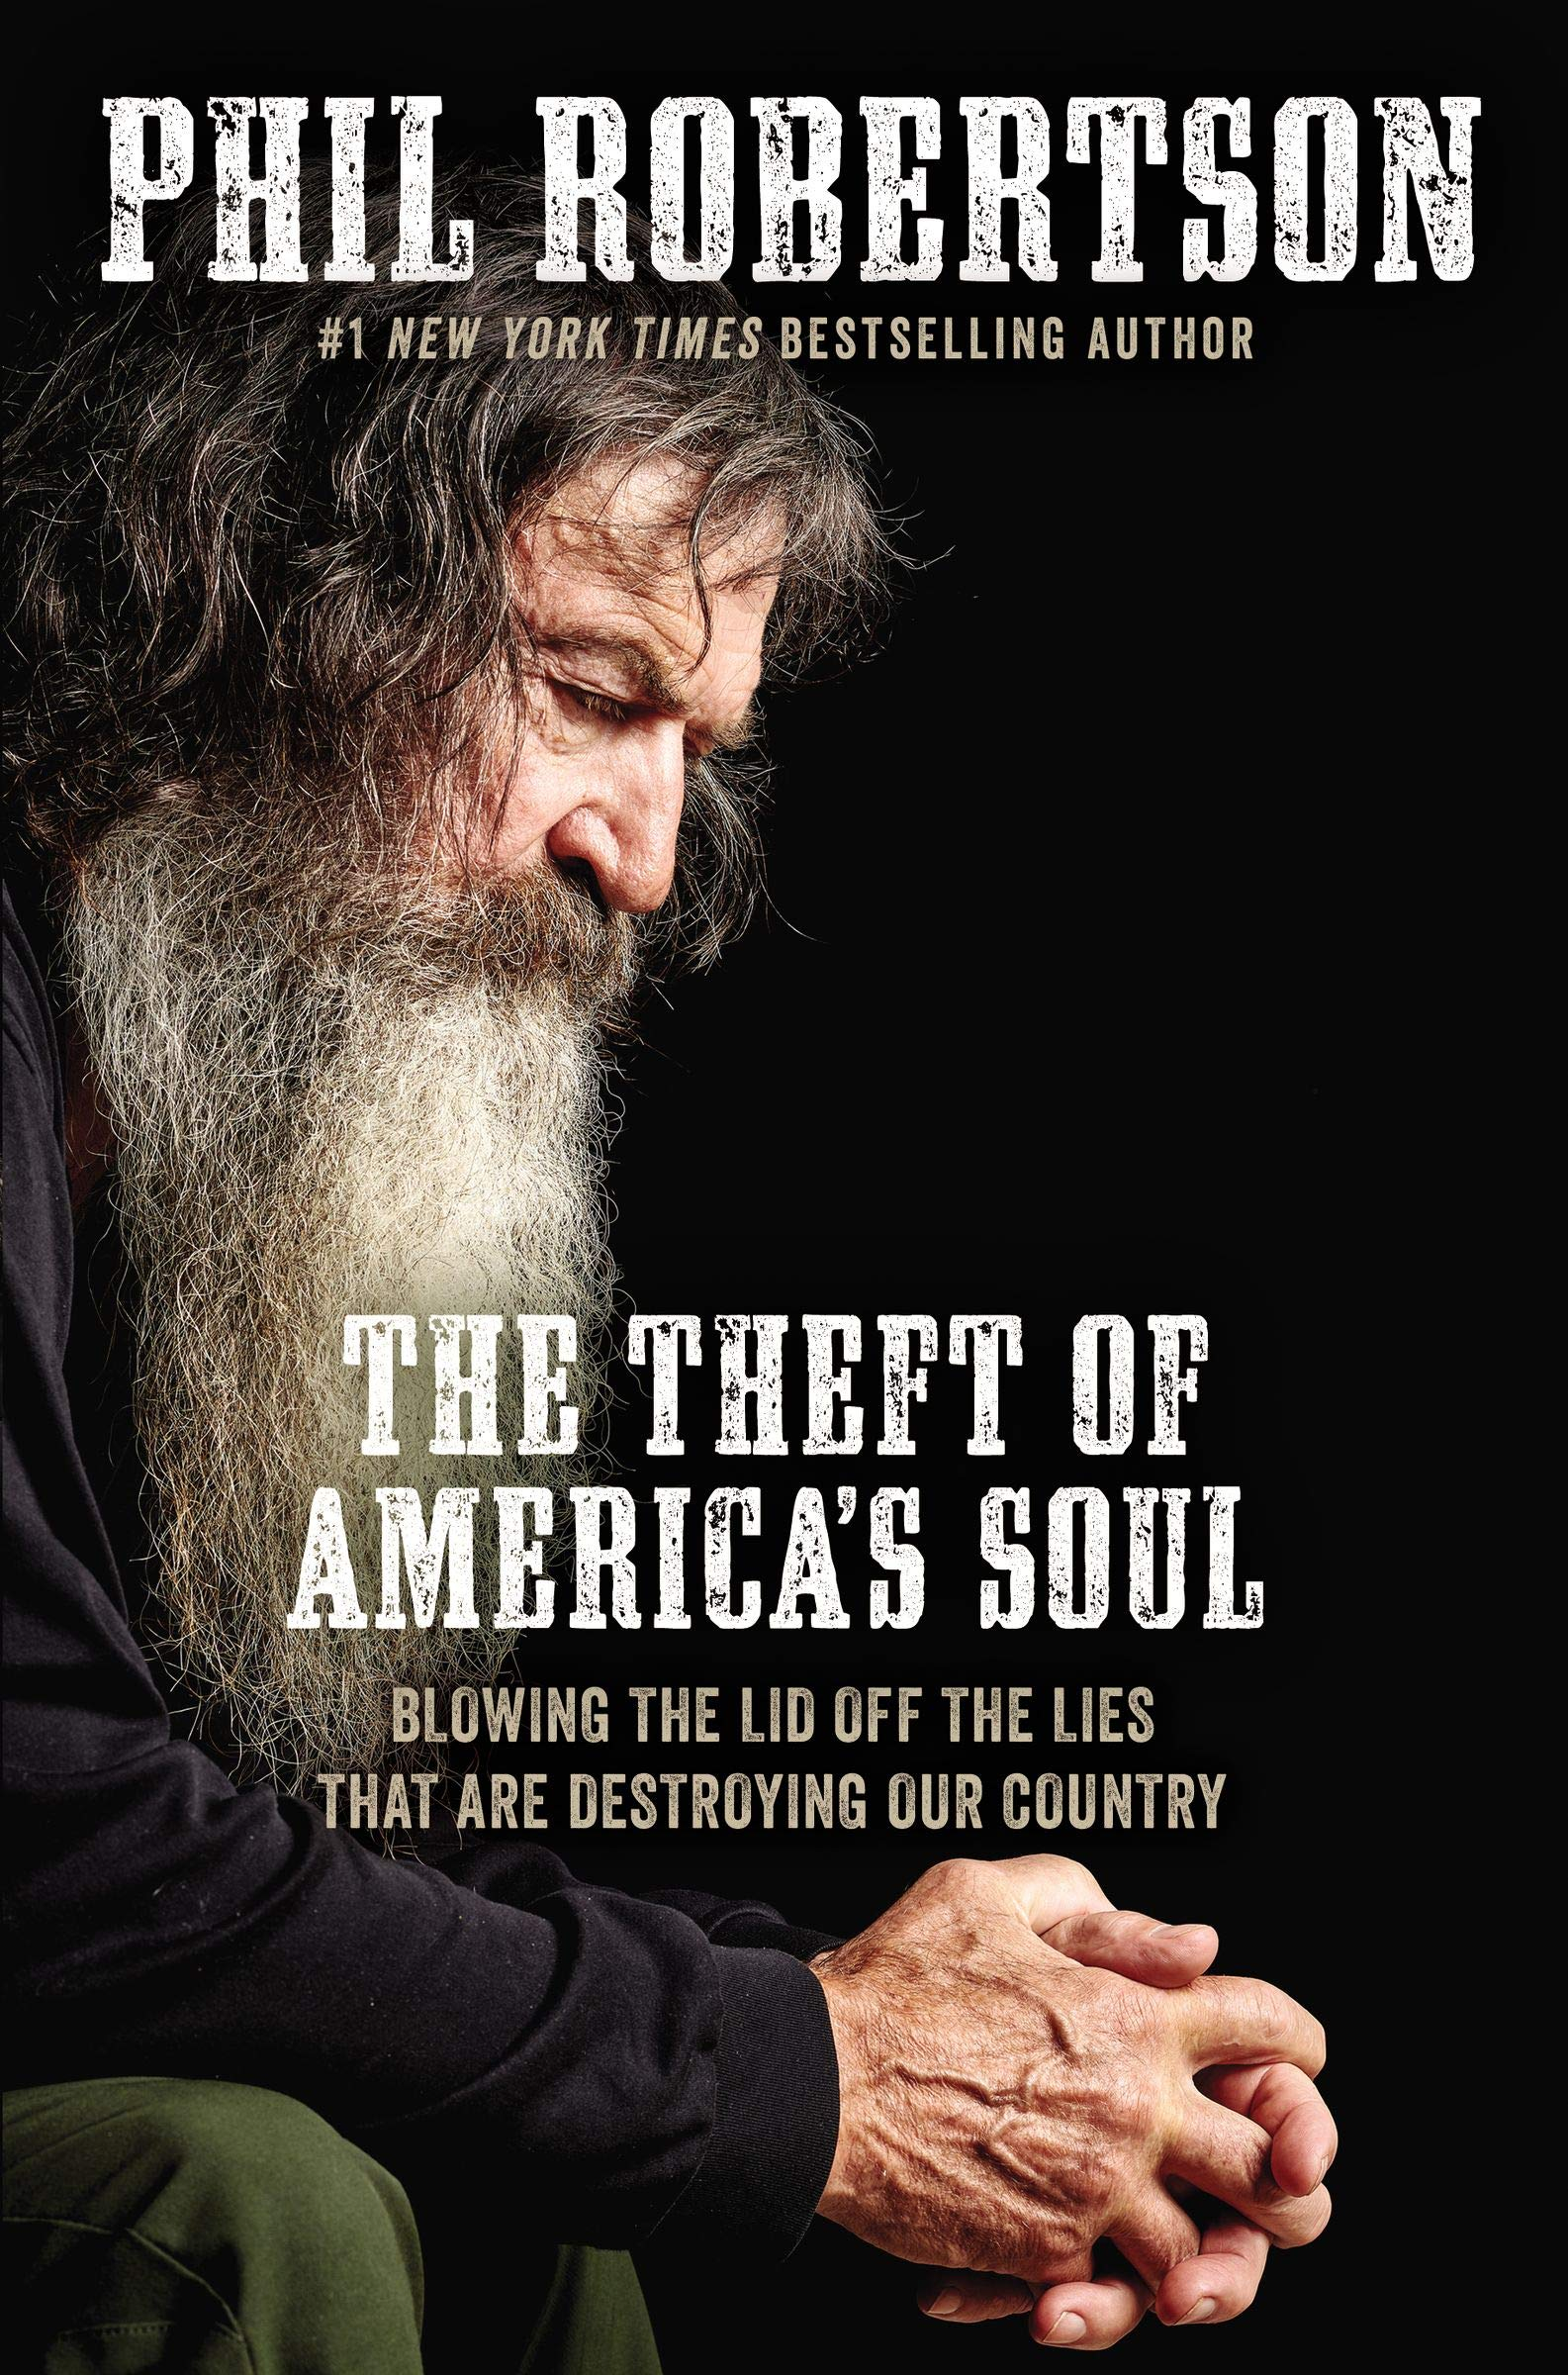 The Theft of America's Soul: Blowing the Lid Off the Lies That Are Destroying Our Country